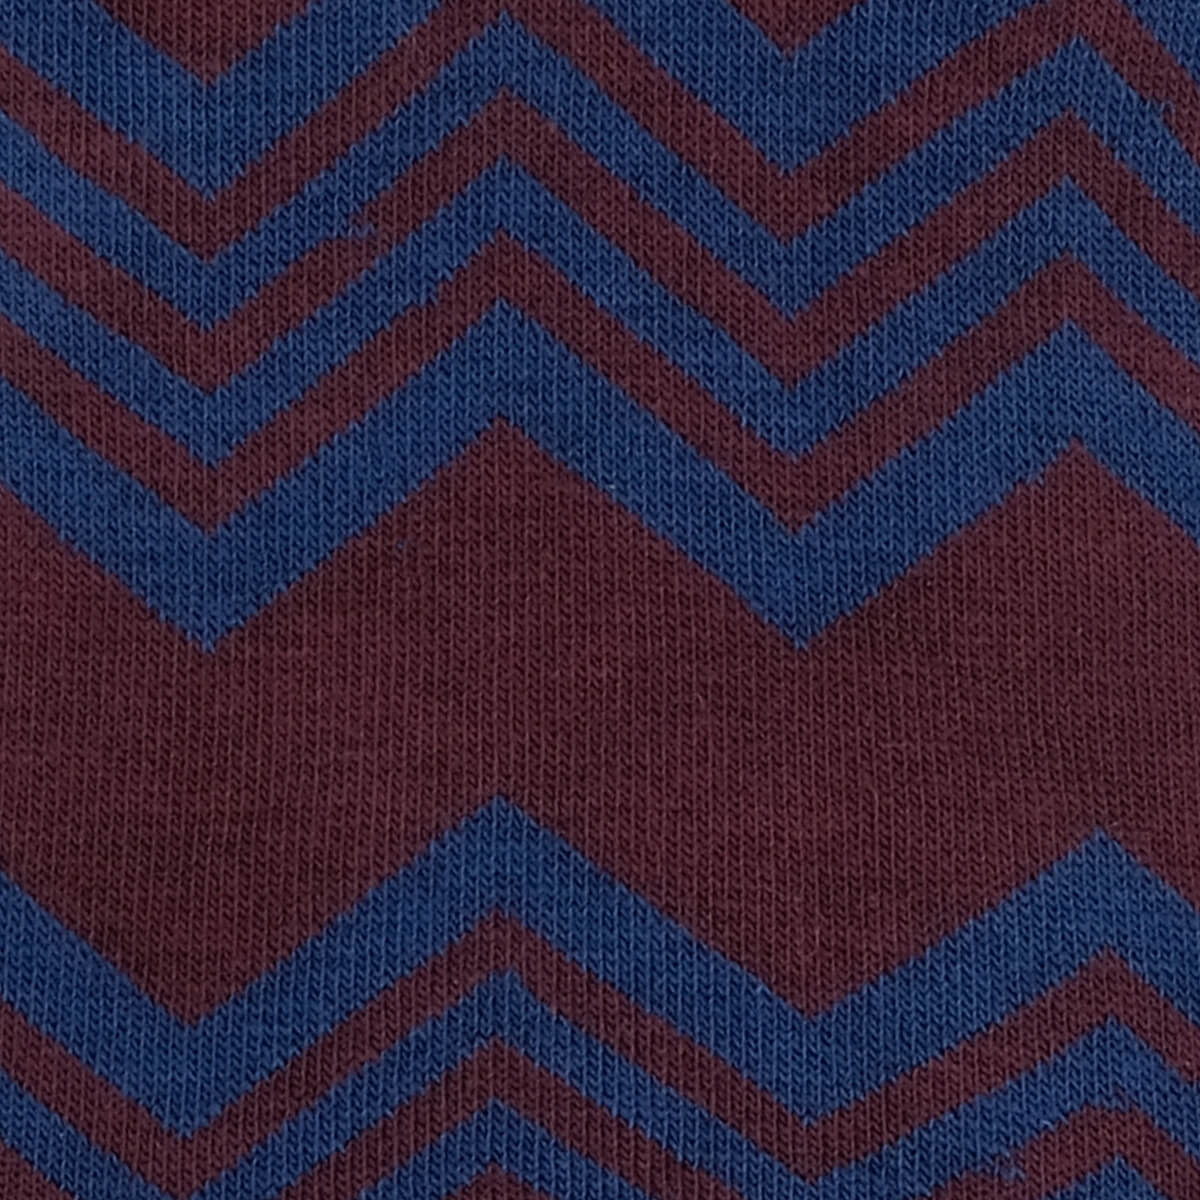 Womens Socks - Alpine Stripes Women's Socks - Bordeaux⎪Etiquette Clothiers